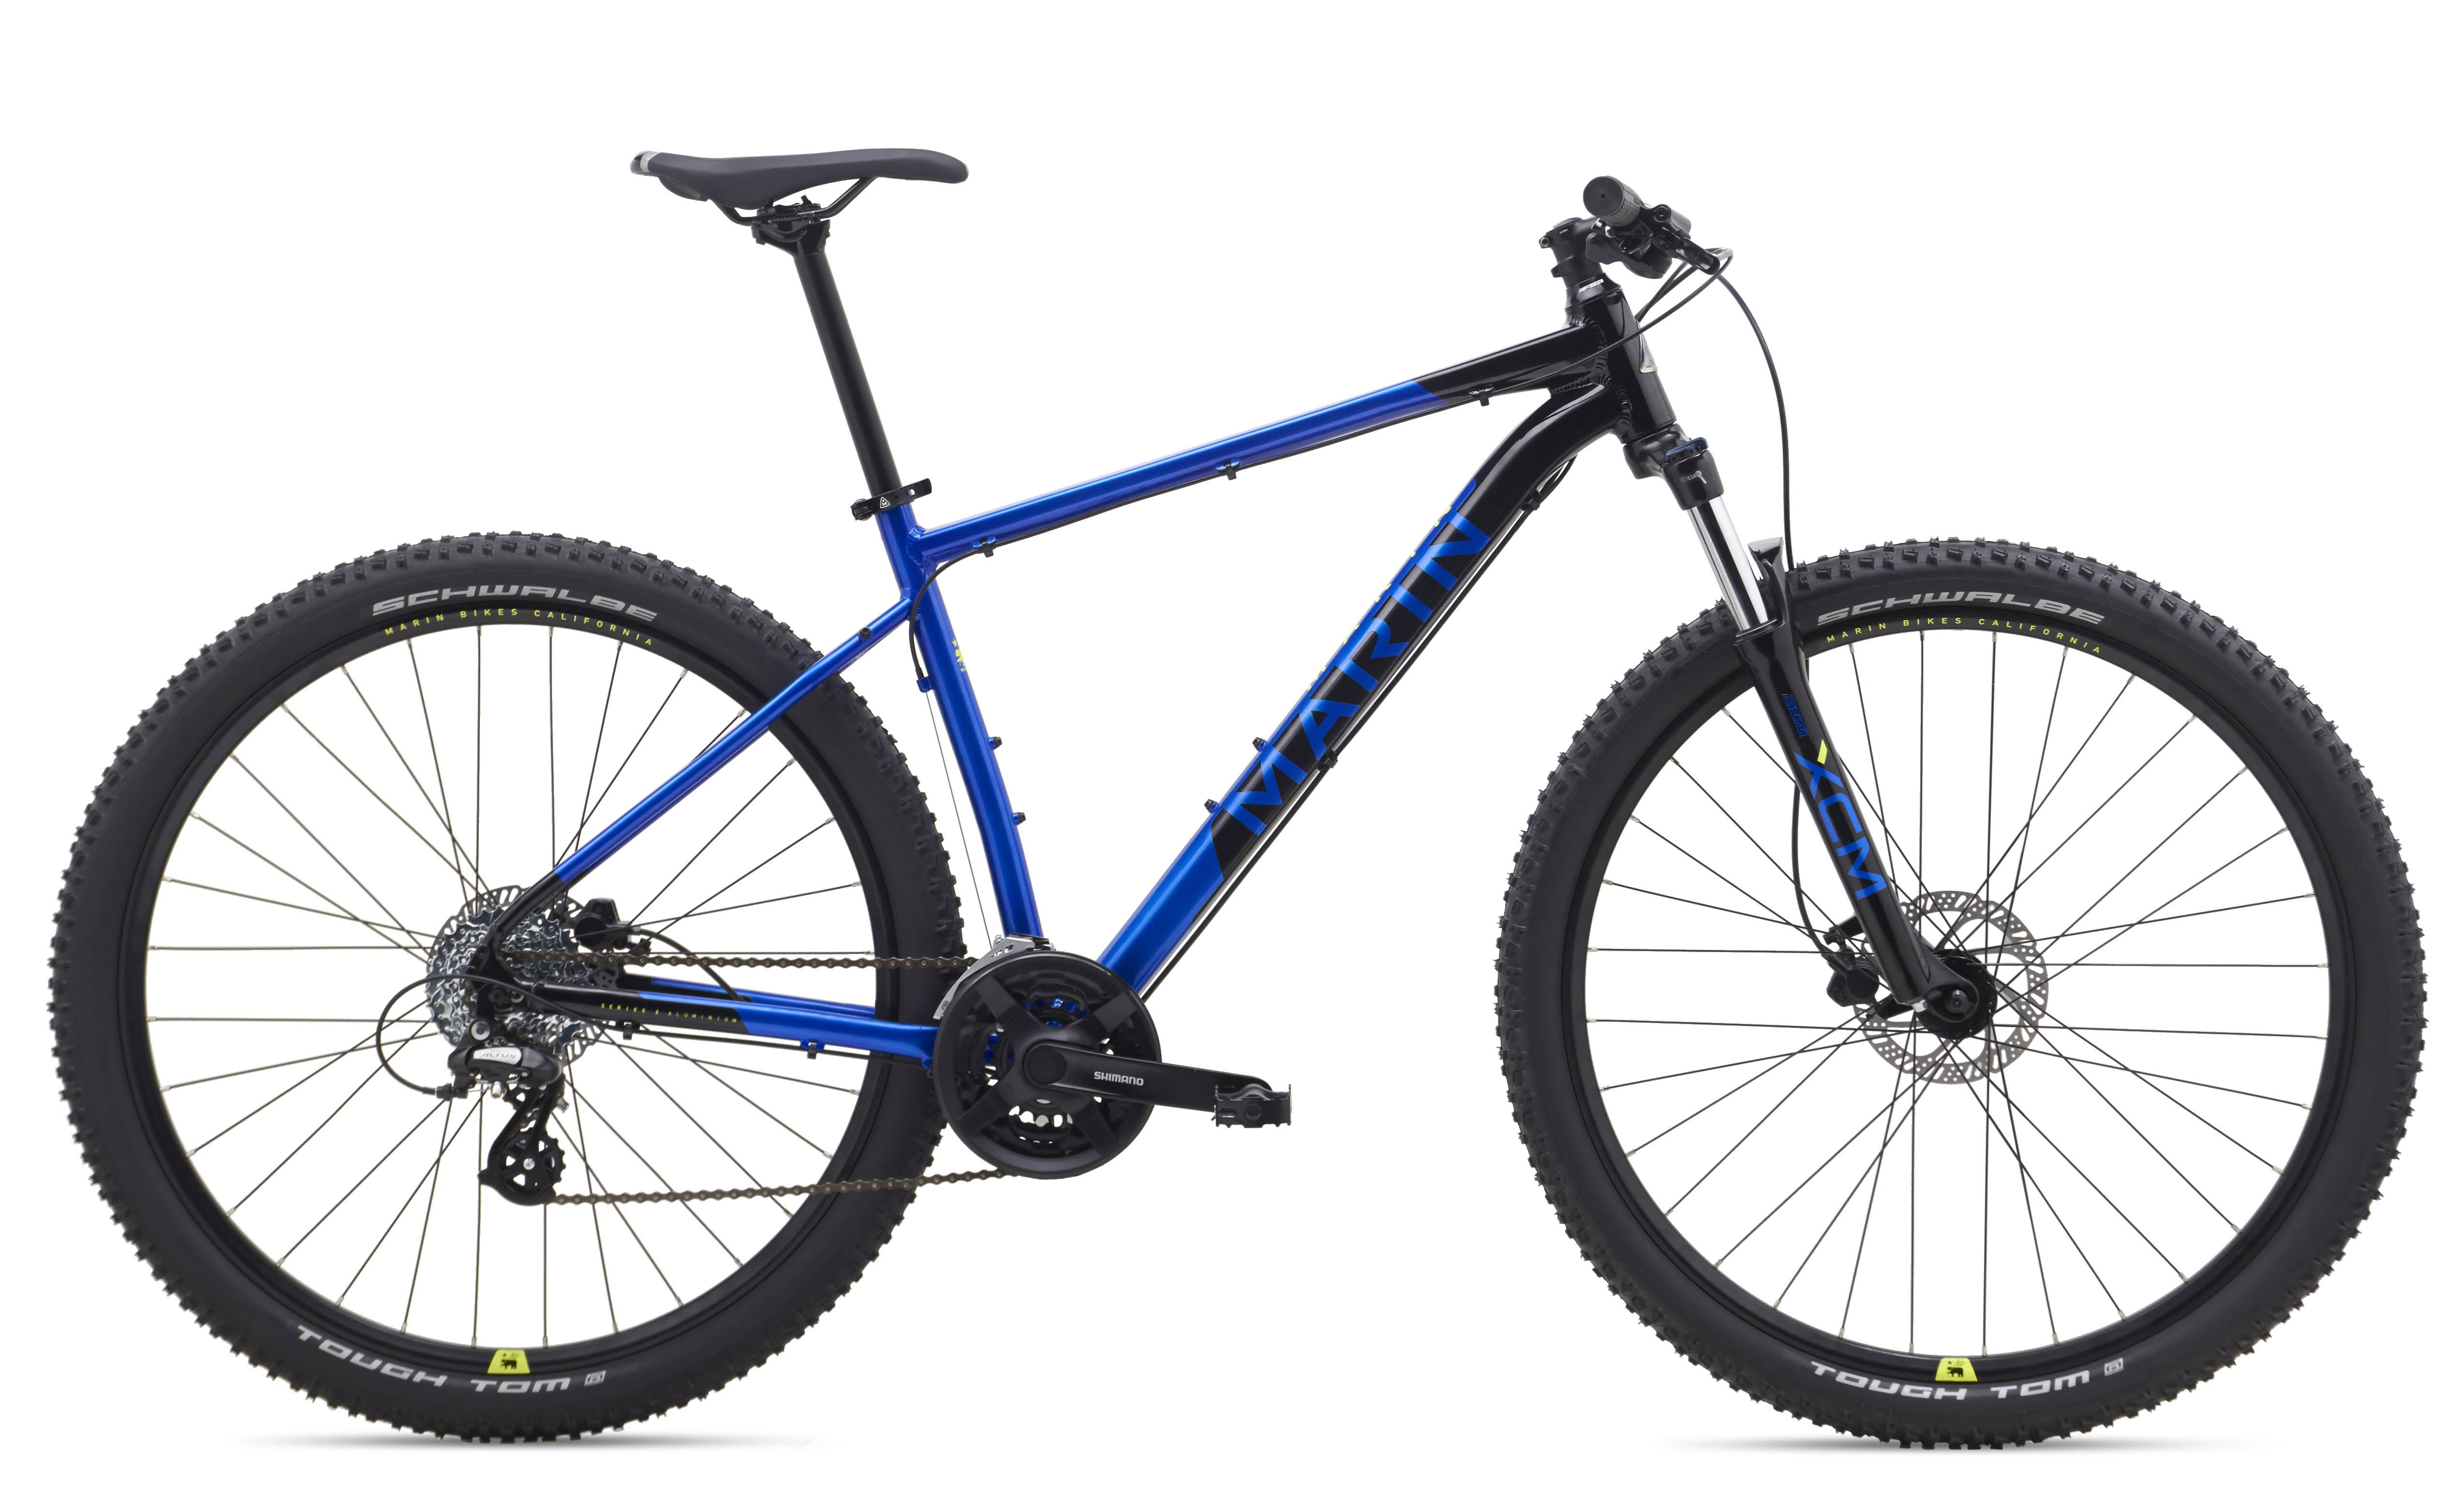 Marin Bobcat Trail 3 27.5 inch; Mountain Bike : Bikes & Frames